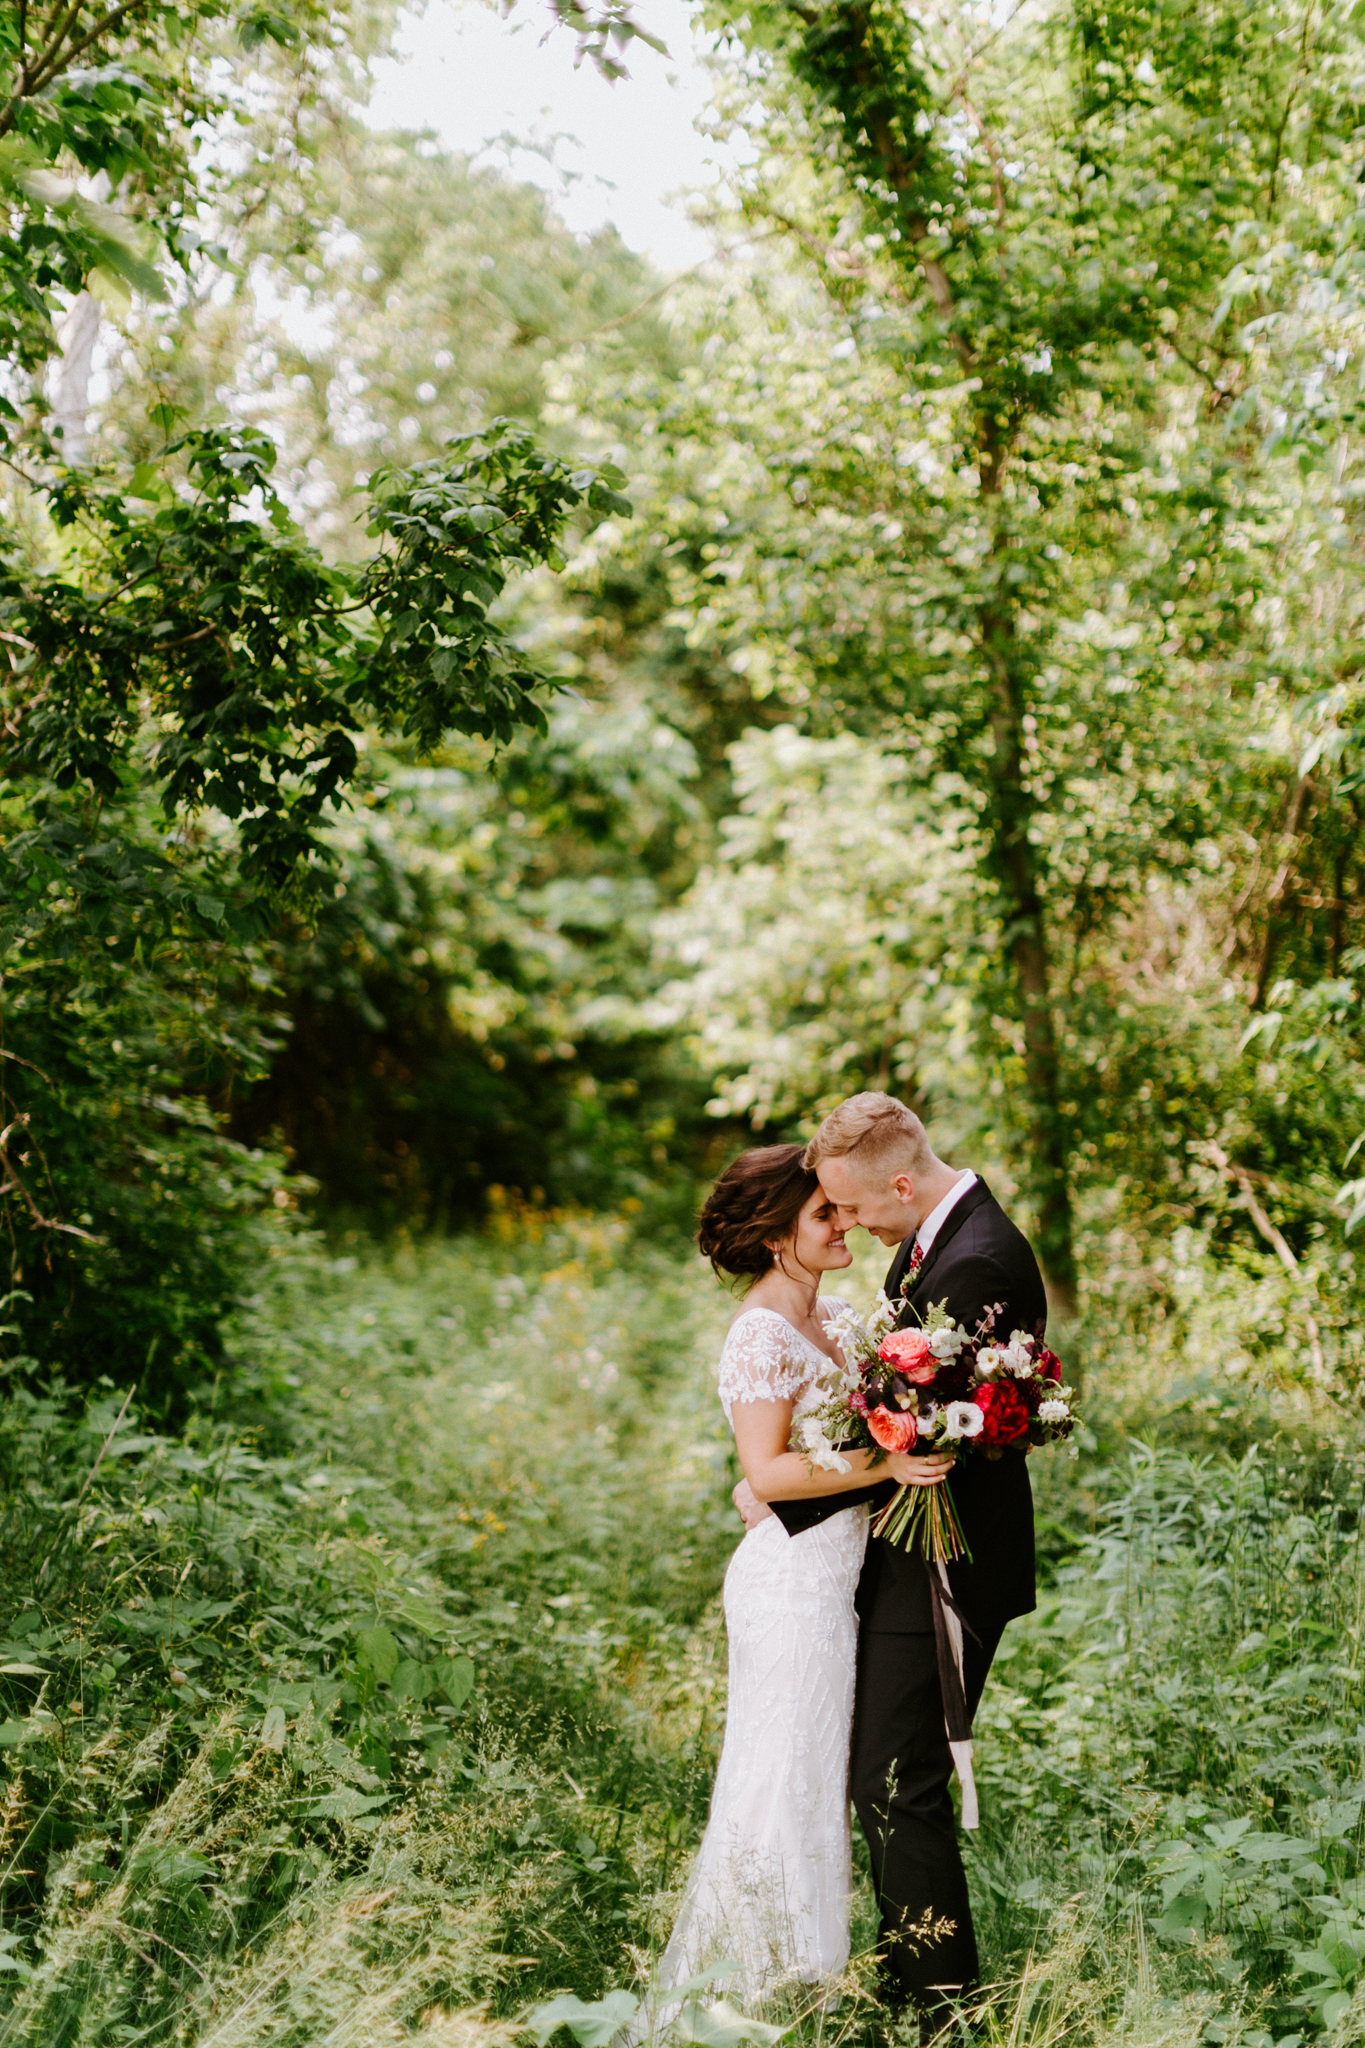 Sarah was the best addition on our wedding day. Her photos speak for themselves.. SHE IS SO CRAZY TALENTED !!!! She is kind, professional, and so creative. We loved that she made us feel comfortable, beautiful, and at ease. She is confident in what she does which allows you as the couple to just sit back and enjoy the day. We are OBSESSED with our photos and will treasure them forever. Do yourself a favor and invest in Sarah Moser Photography... you'll get to relive your special day over + over with gorgeous, emotional, and timeless photos   RAEGAN+TREVOR